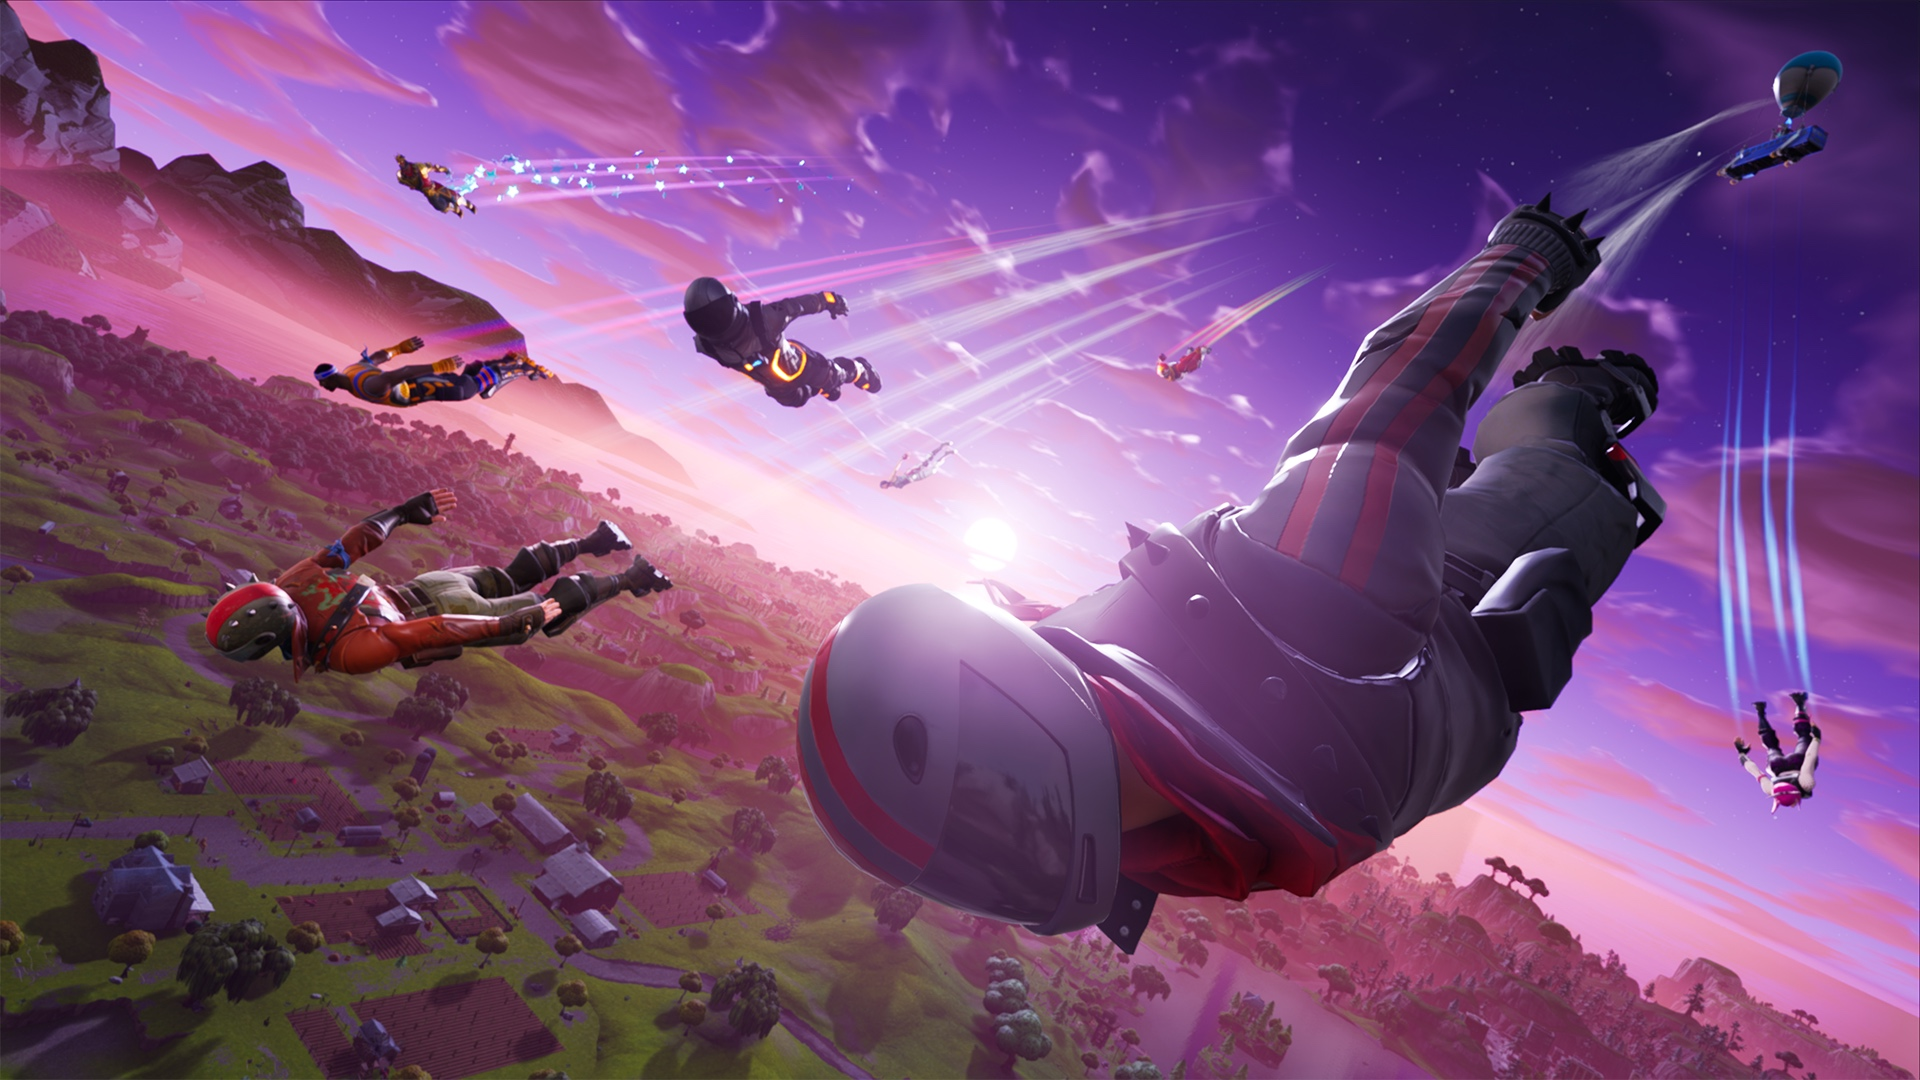 Epic is selling Fortnite DLC in stores again this holiday